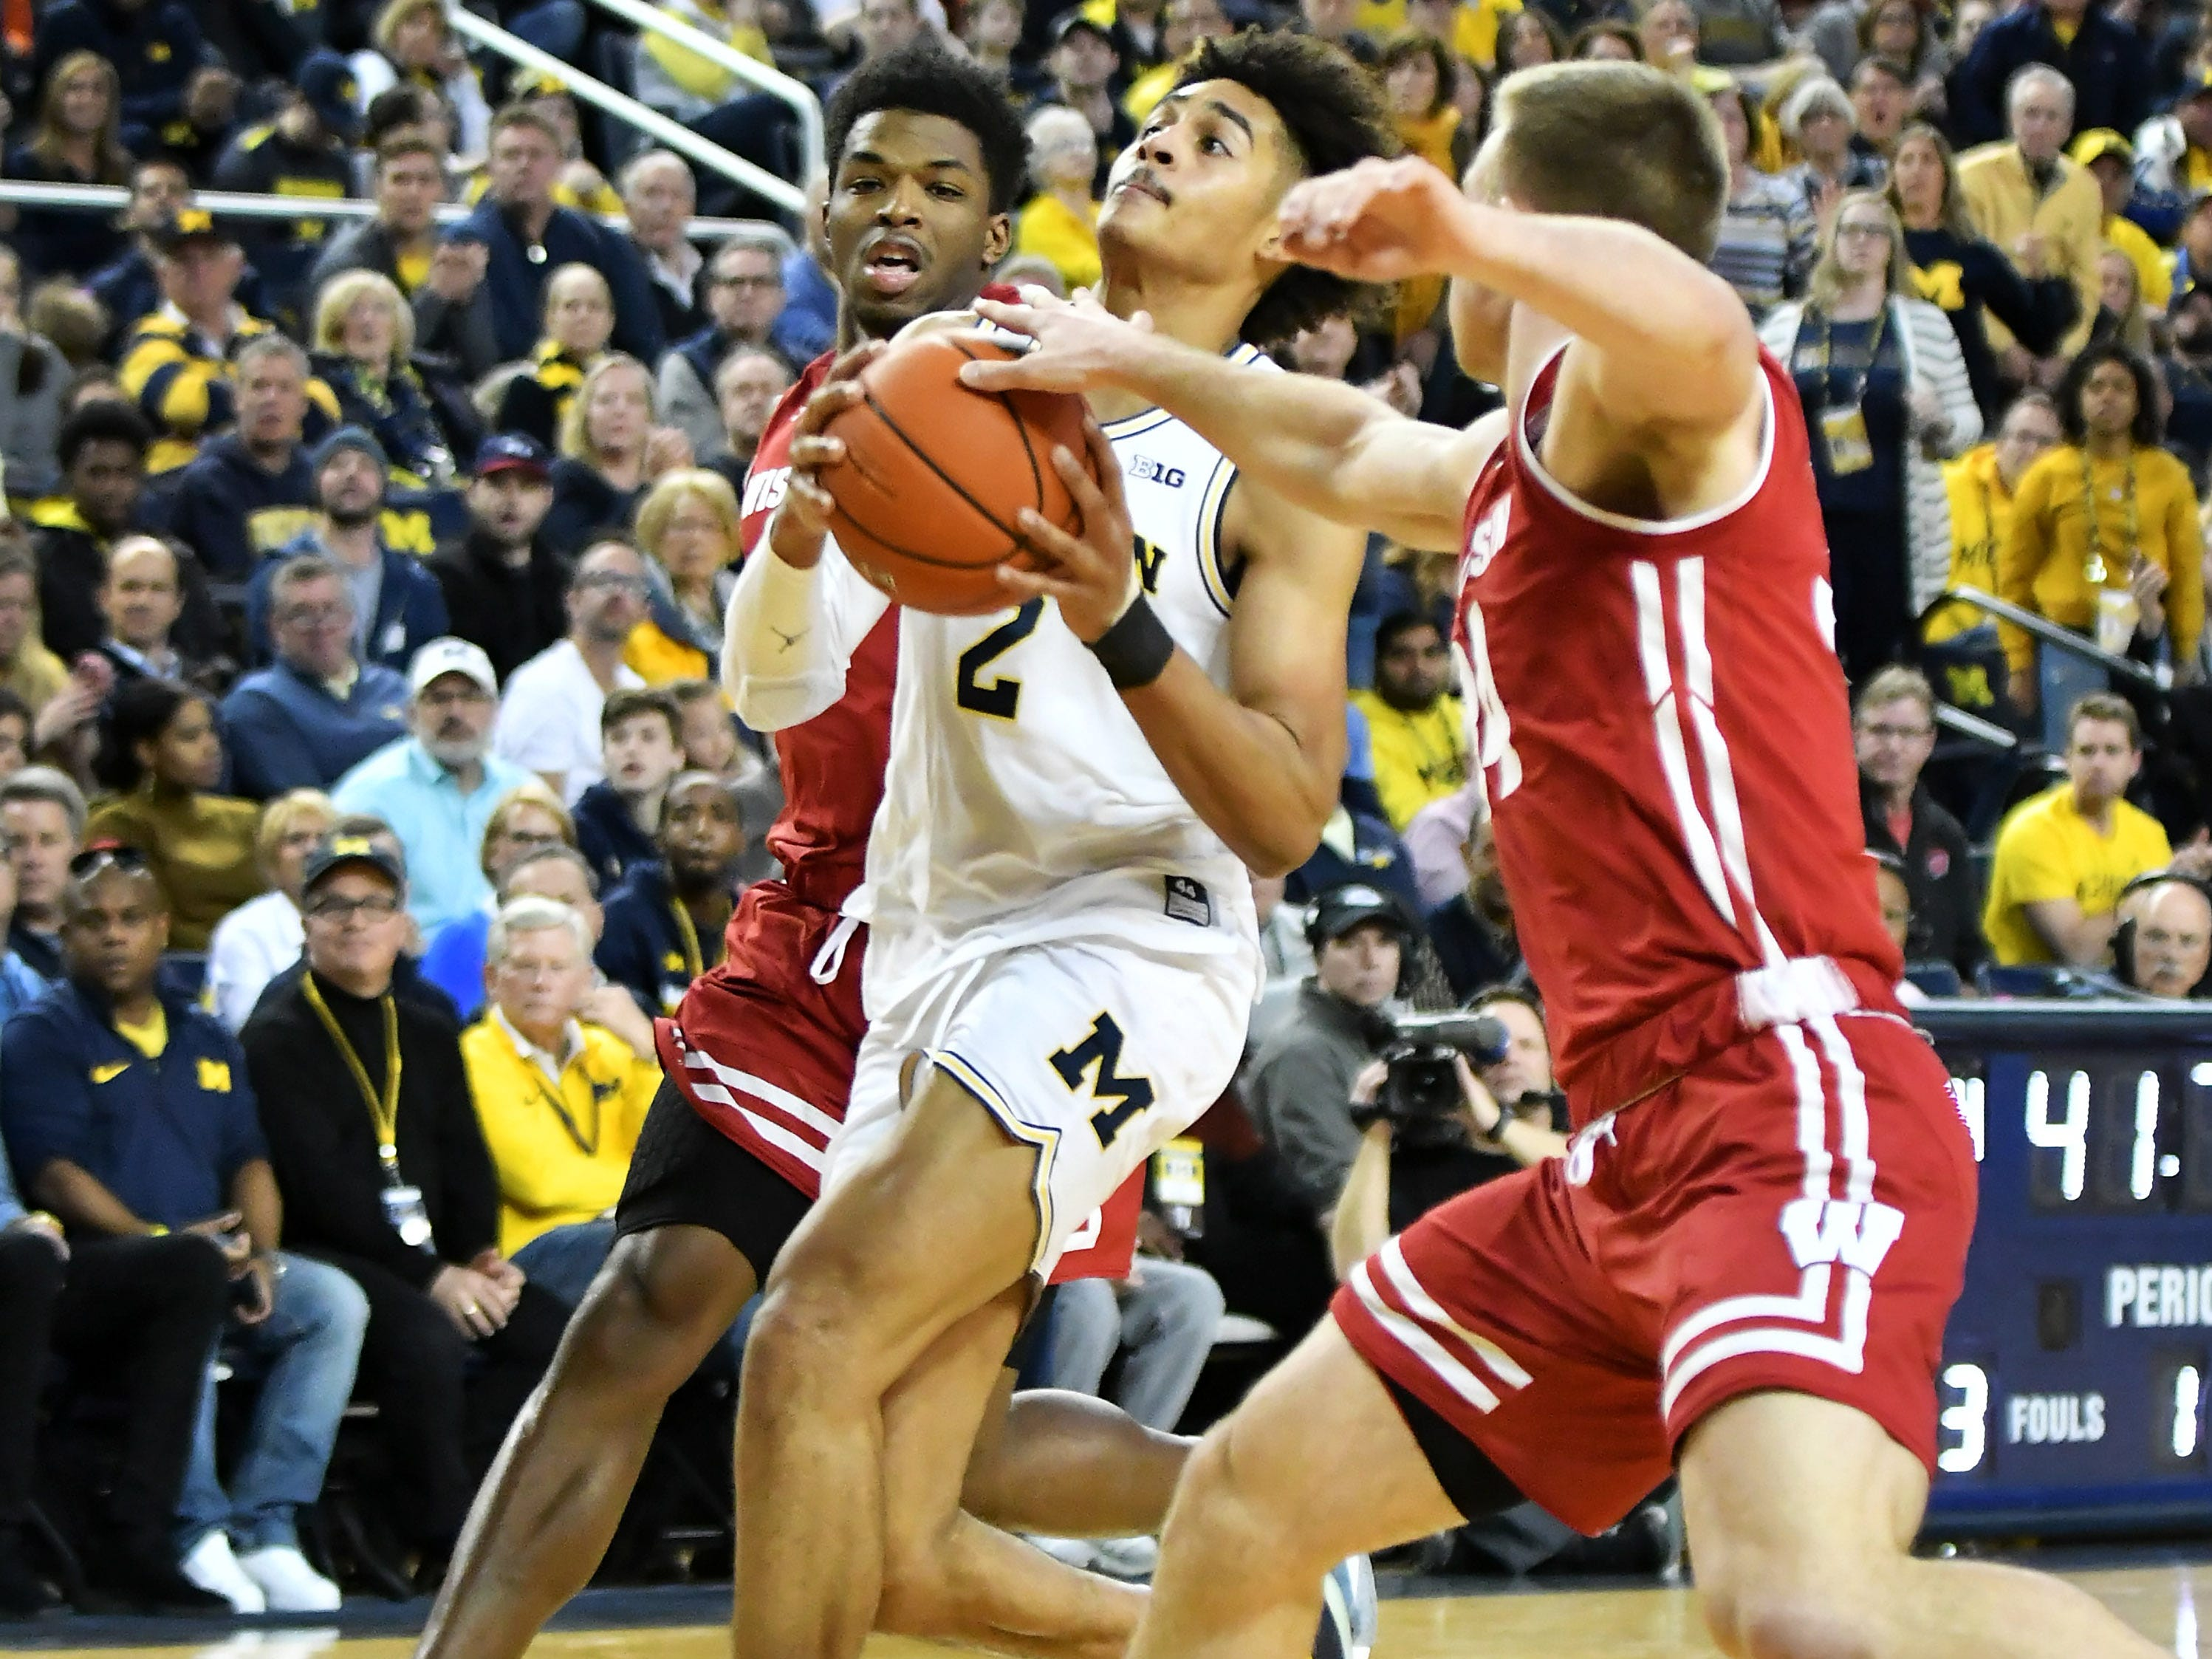 Wisconsin guard Khalil Iverson (21) and Wisconsin guard Brad Davison (34) defend a drive by Michigan guard Jordan Poole (2) in the first half.